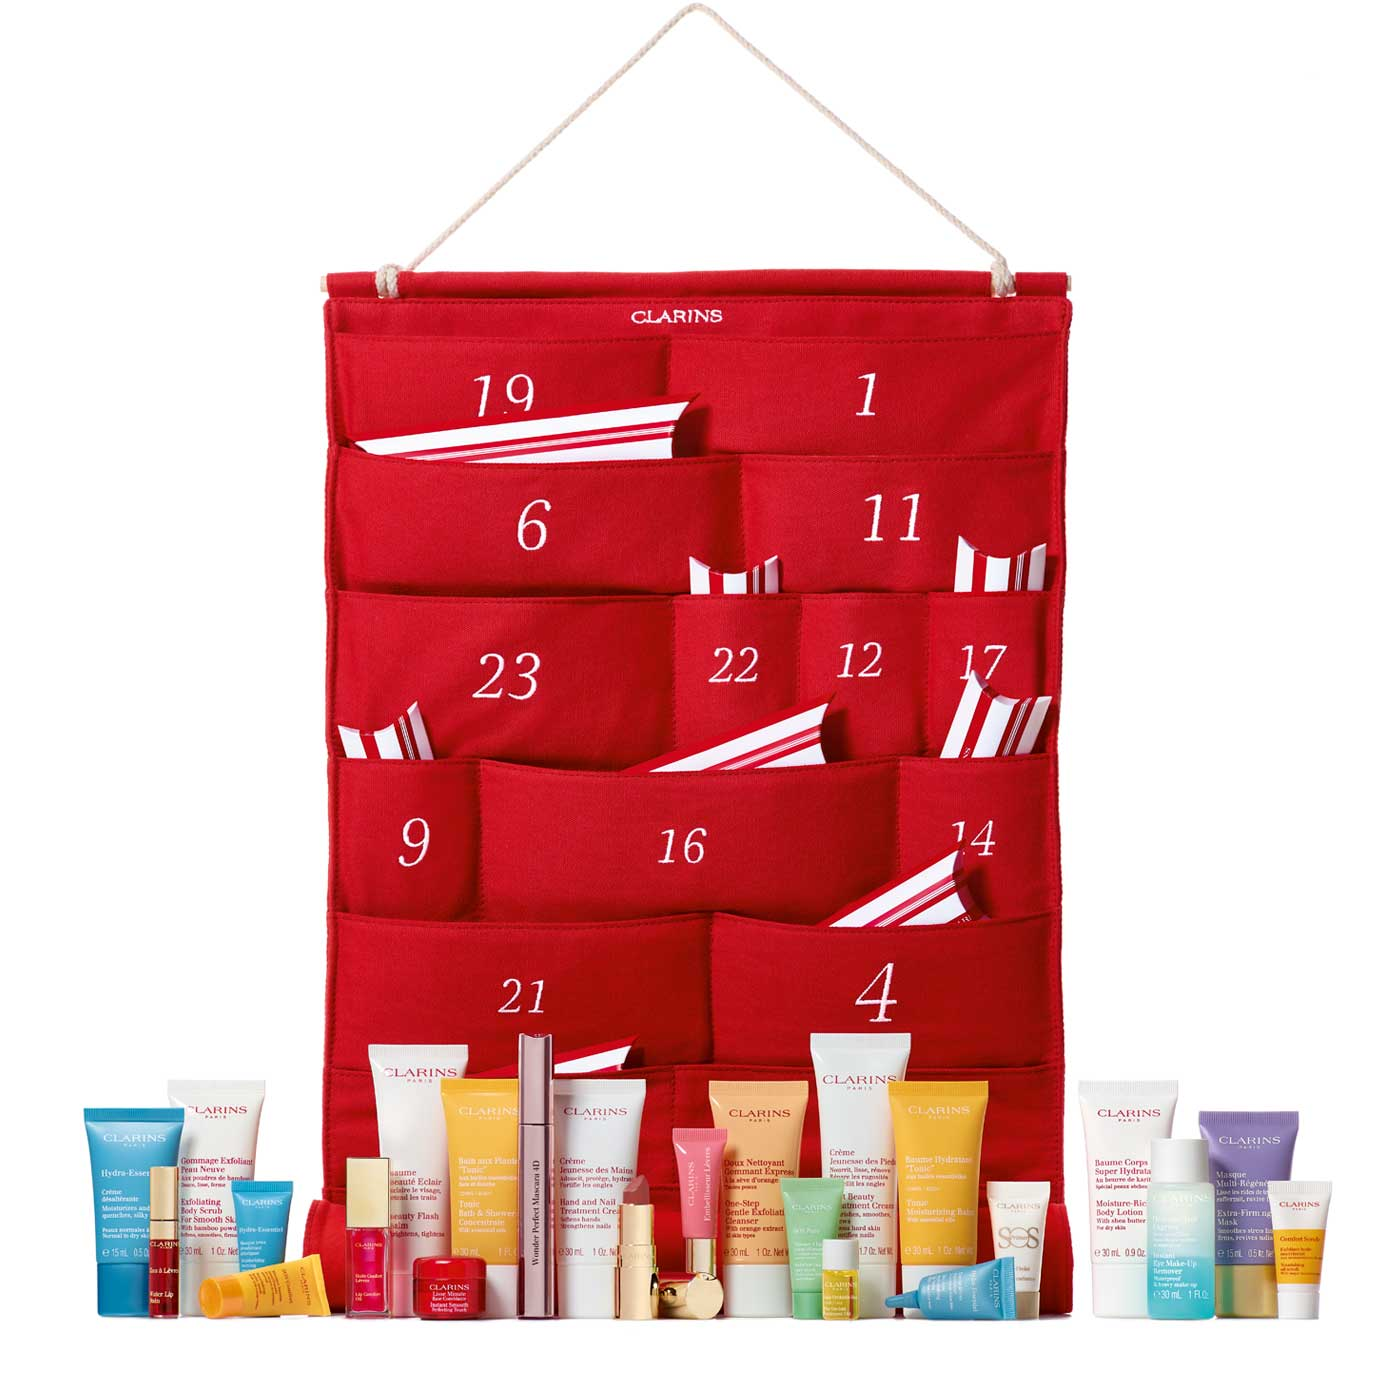 CLARINS & SHOPPERS DRUG MART CANADA: Clarins 24 Beauty Days Advent